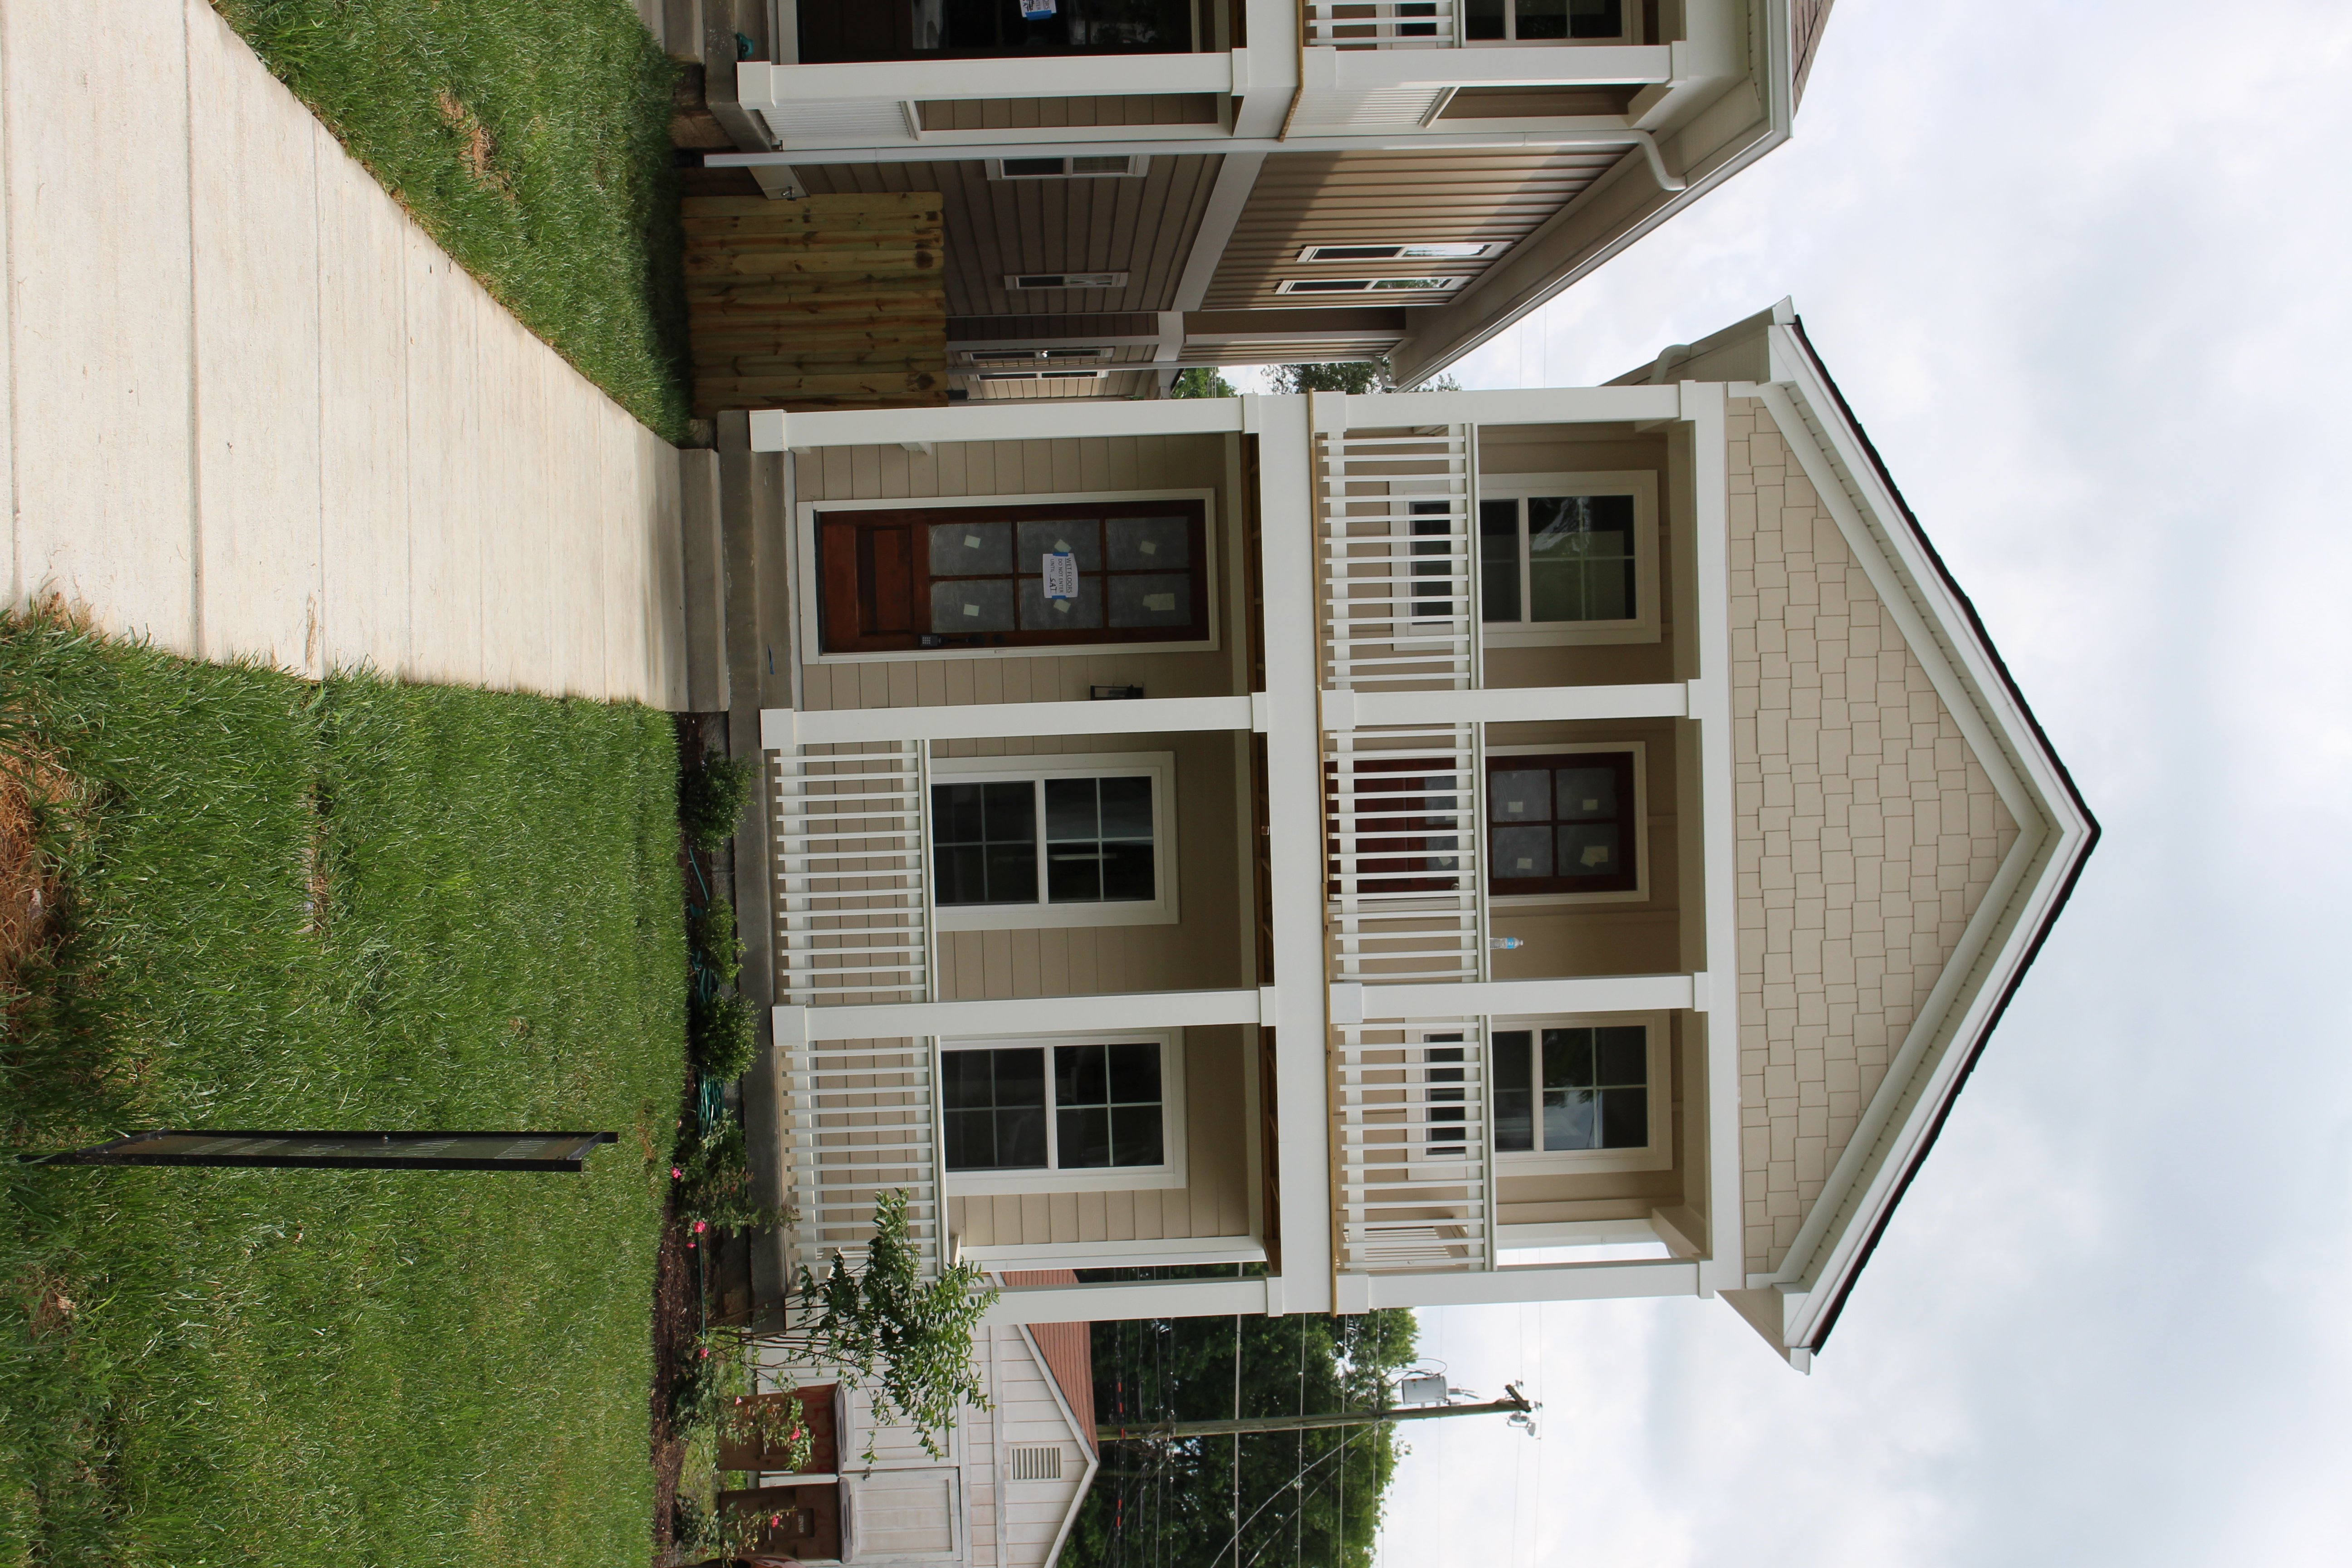 Louisiana Ave front of house